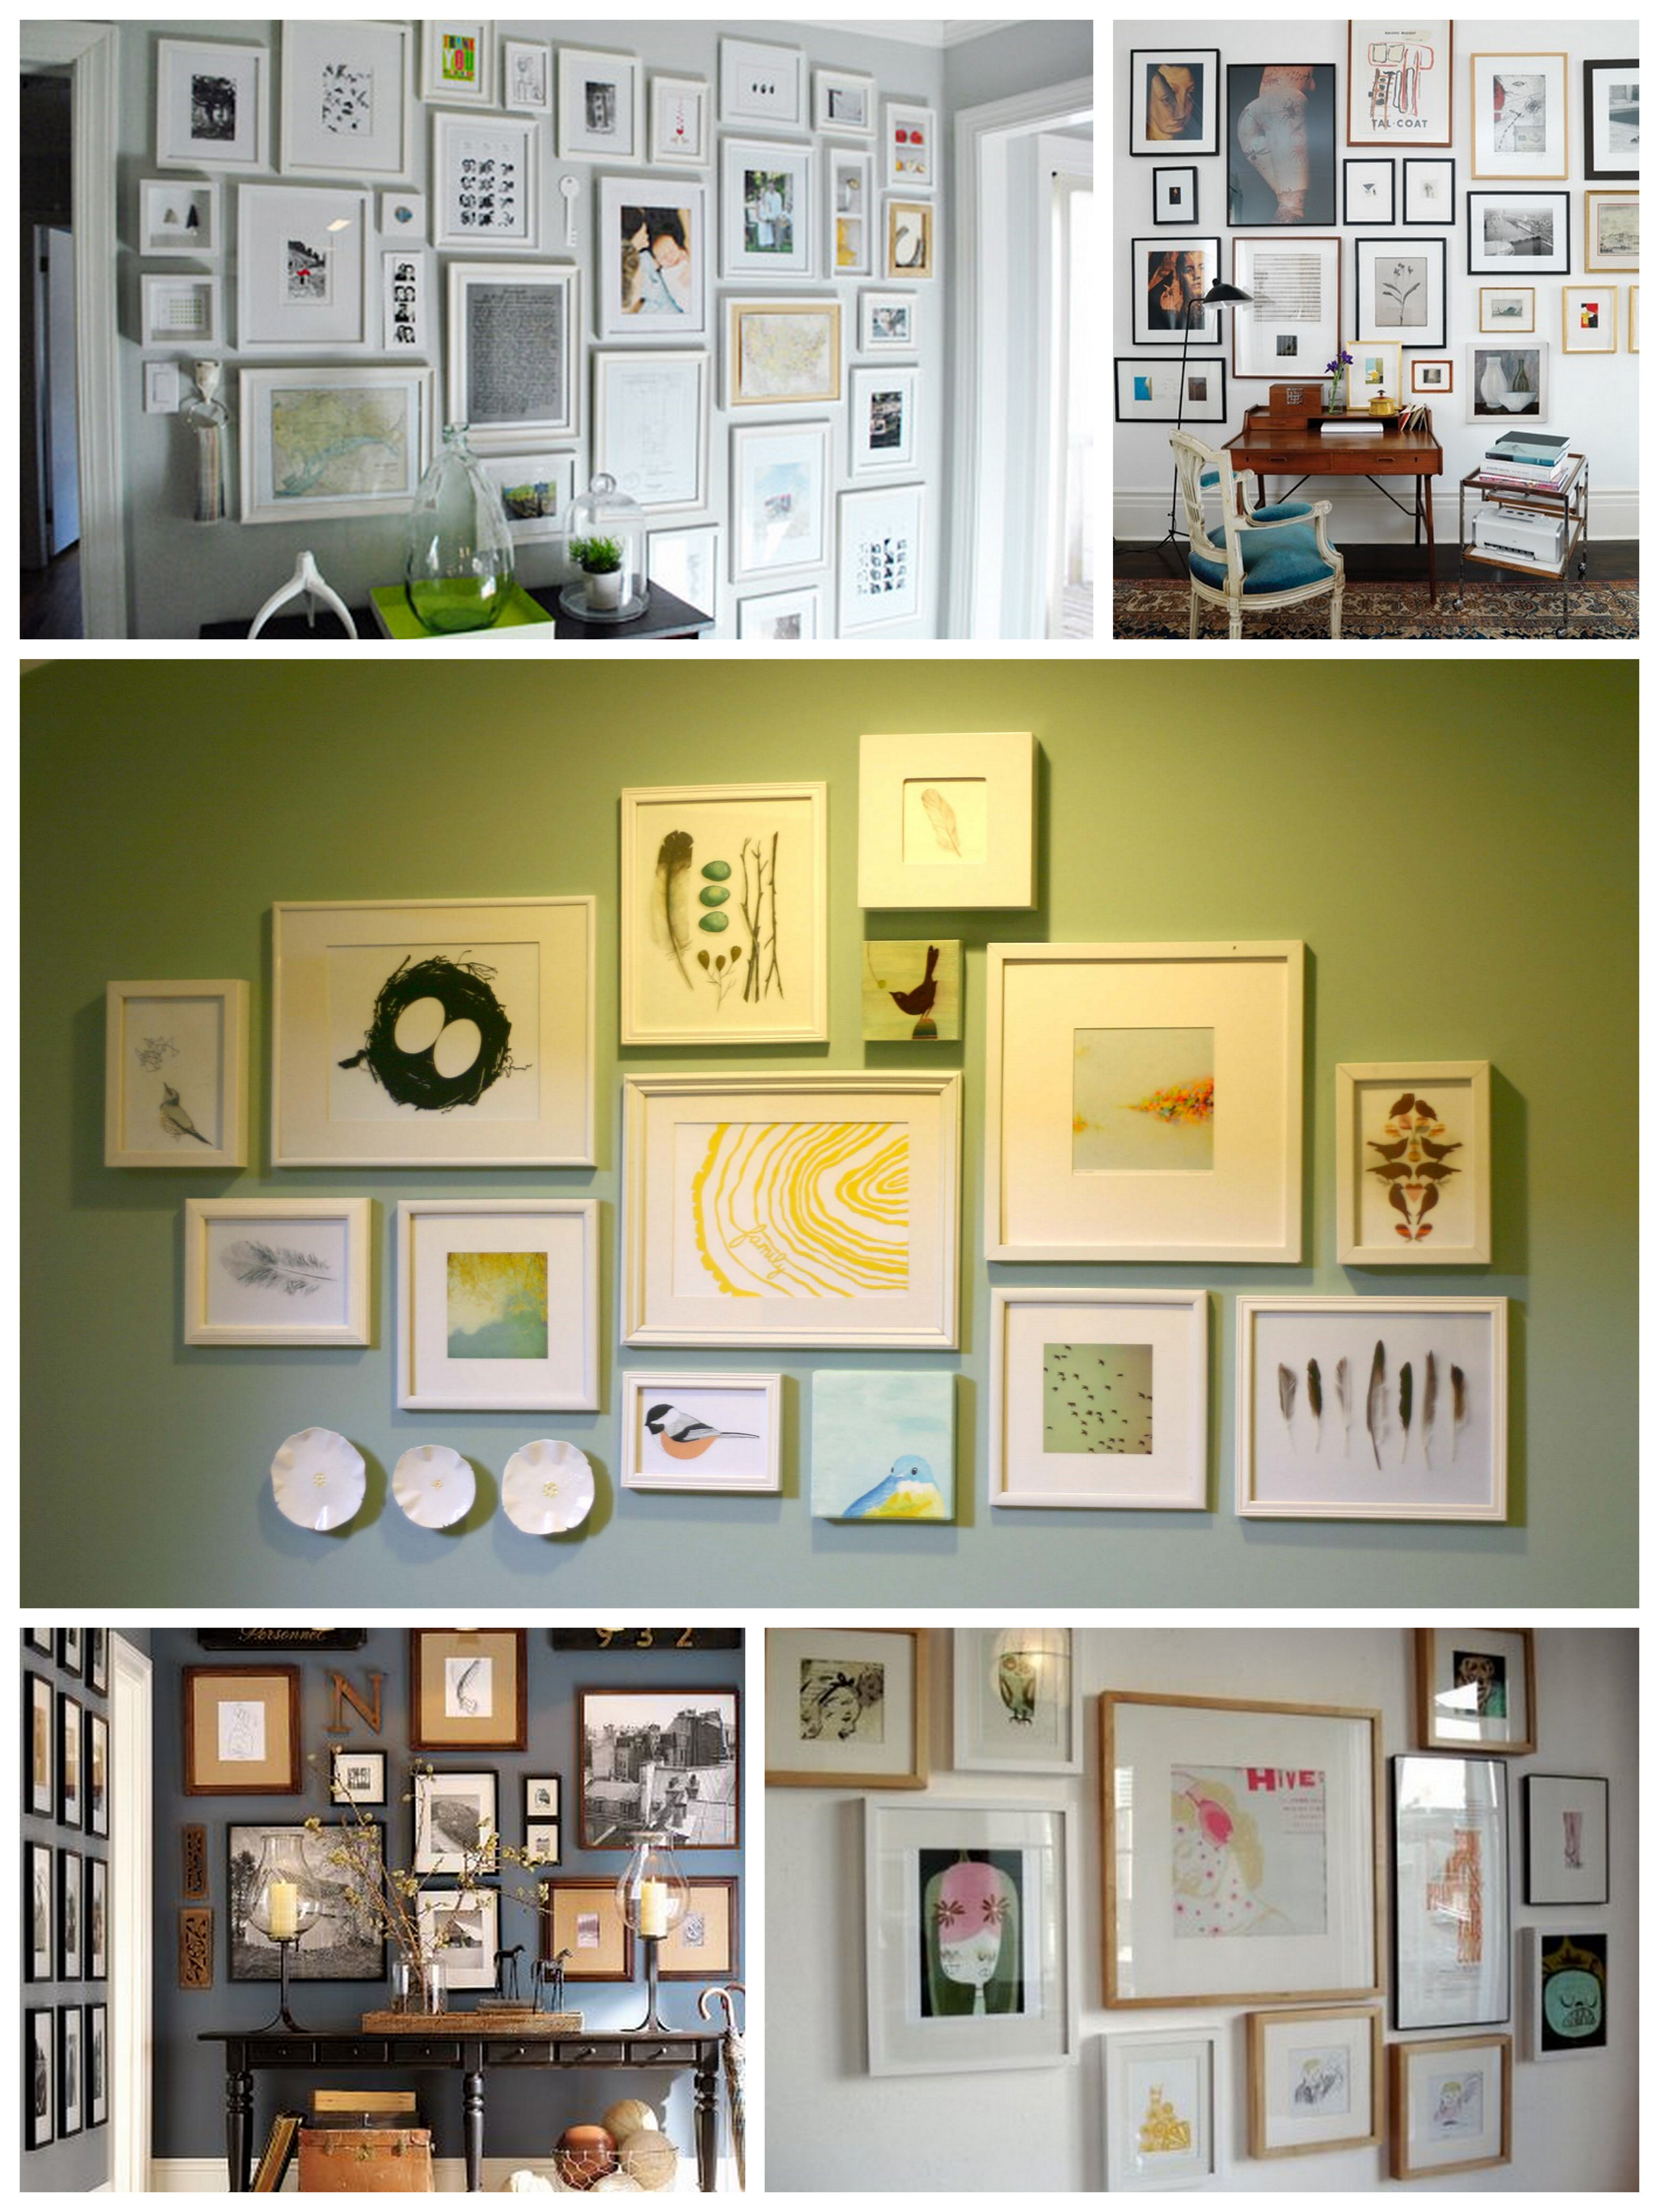 Photo frame wall collage 8065635 - som300.info